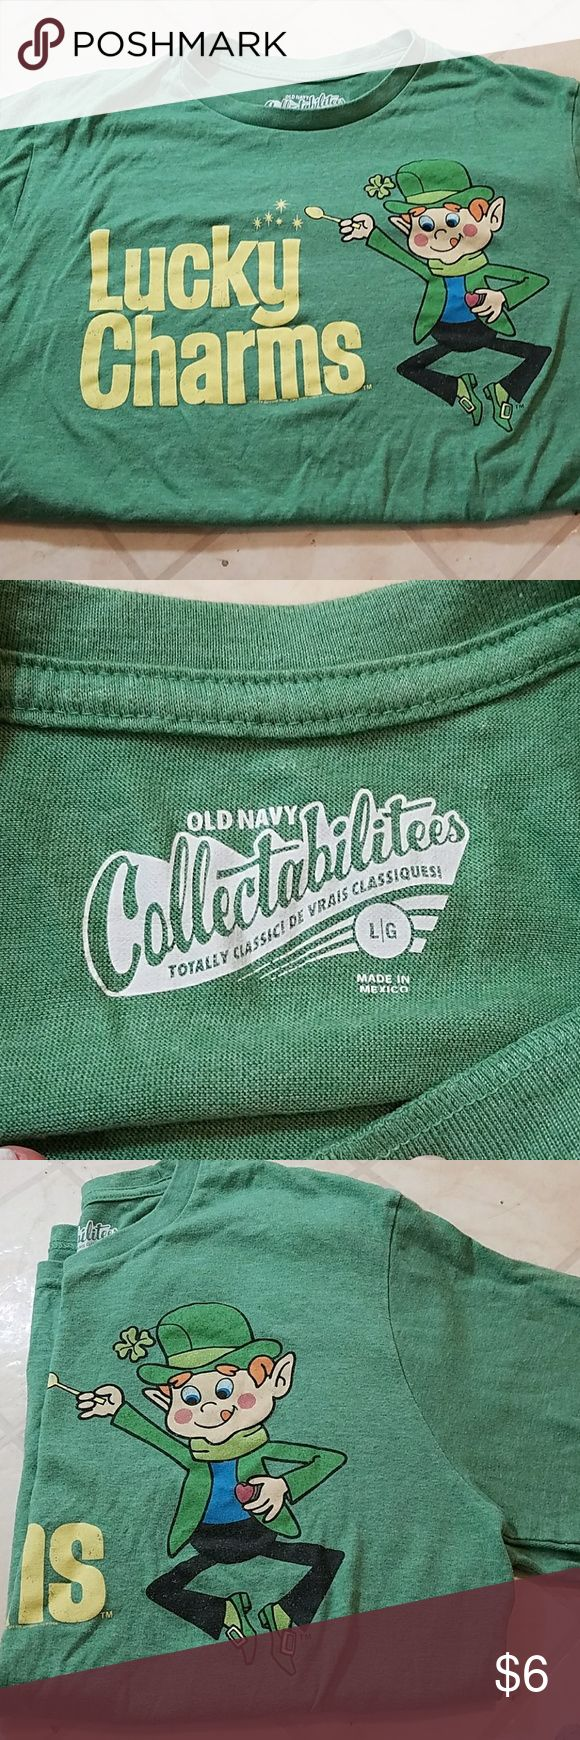 Old navy collectibles t shirt Like new, lucky charms collectible t shirt   50/50 cotton & polyester Old Navy Shirts Tees - Long Sleeve